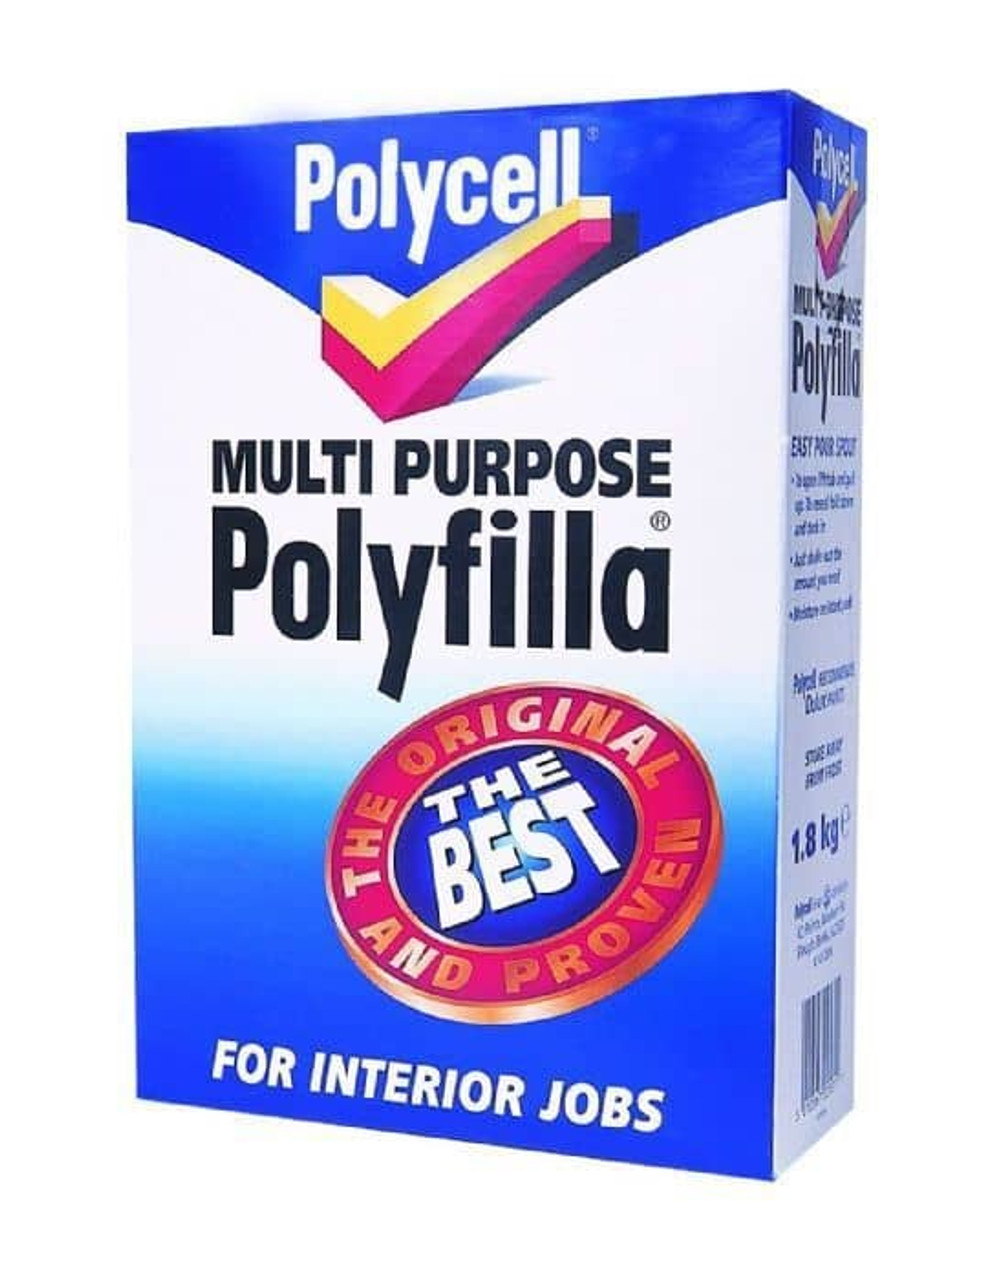 Polycell 1.8kg Polyfilla Multi-Purpose Powder